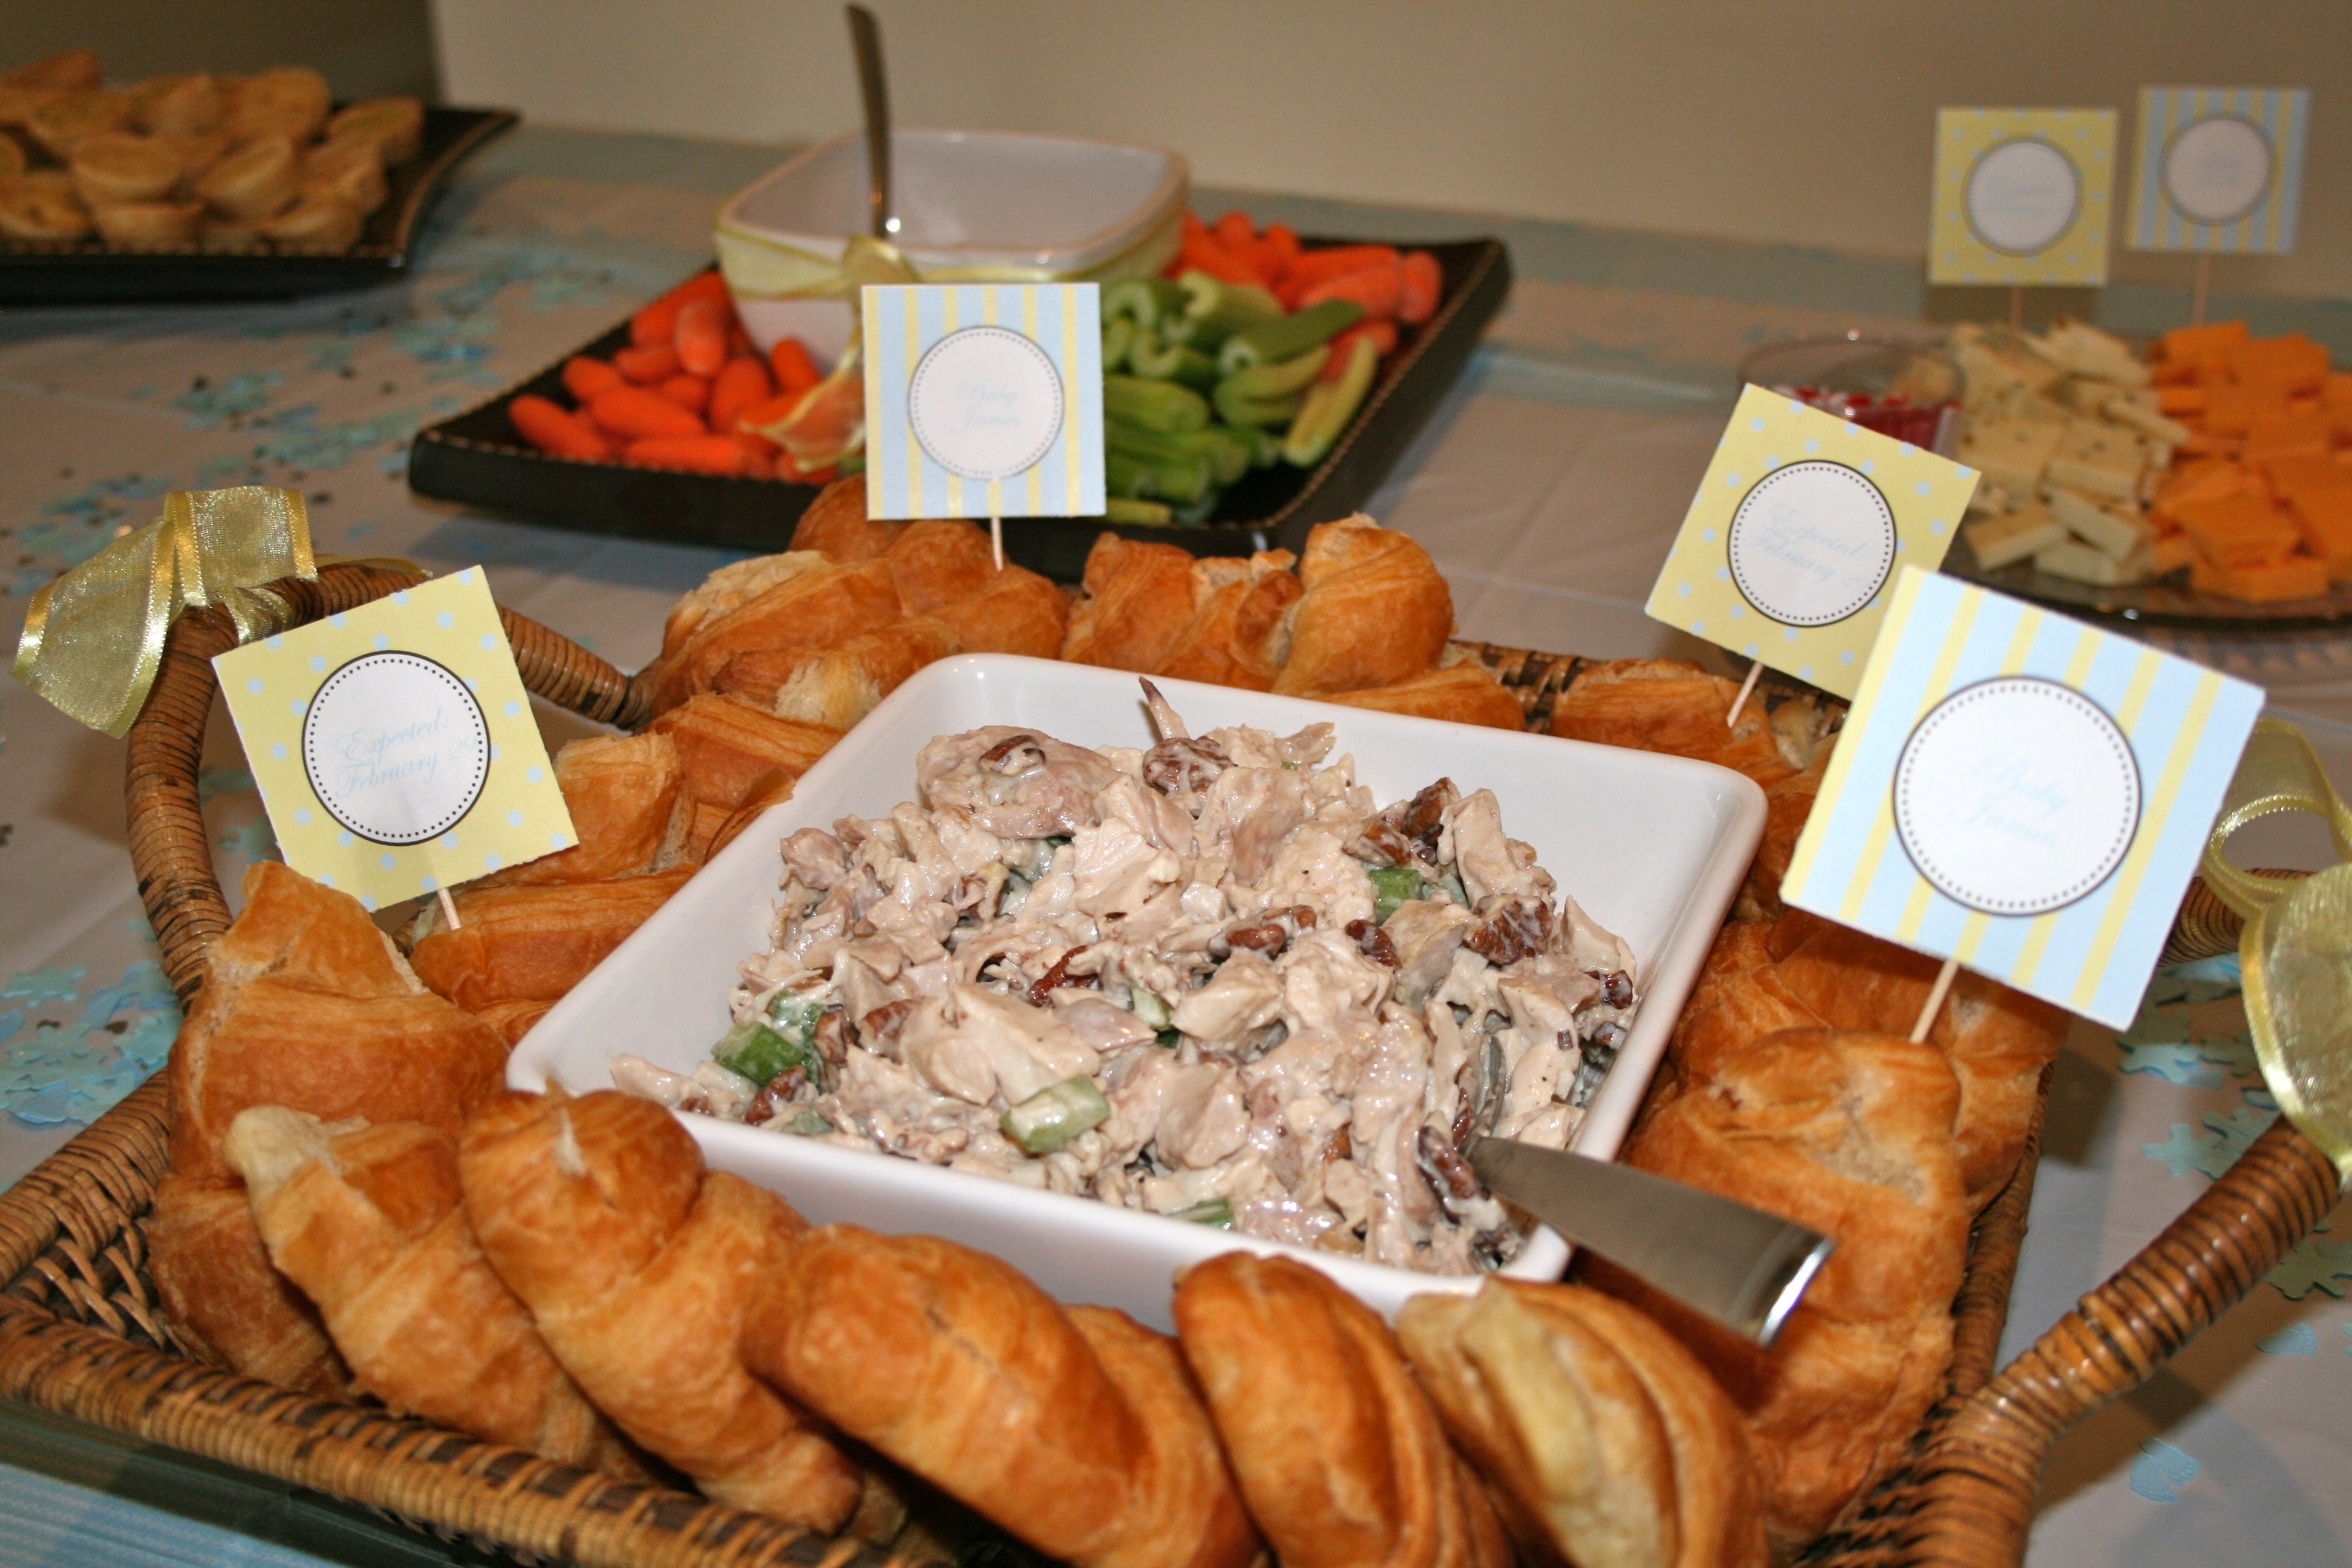 10 Perfect Menu Ideas For Baby Shower baby shower menu ideas on budget attractive pictures gallery x girl 2020